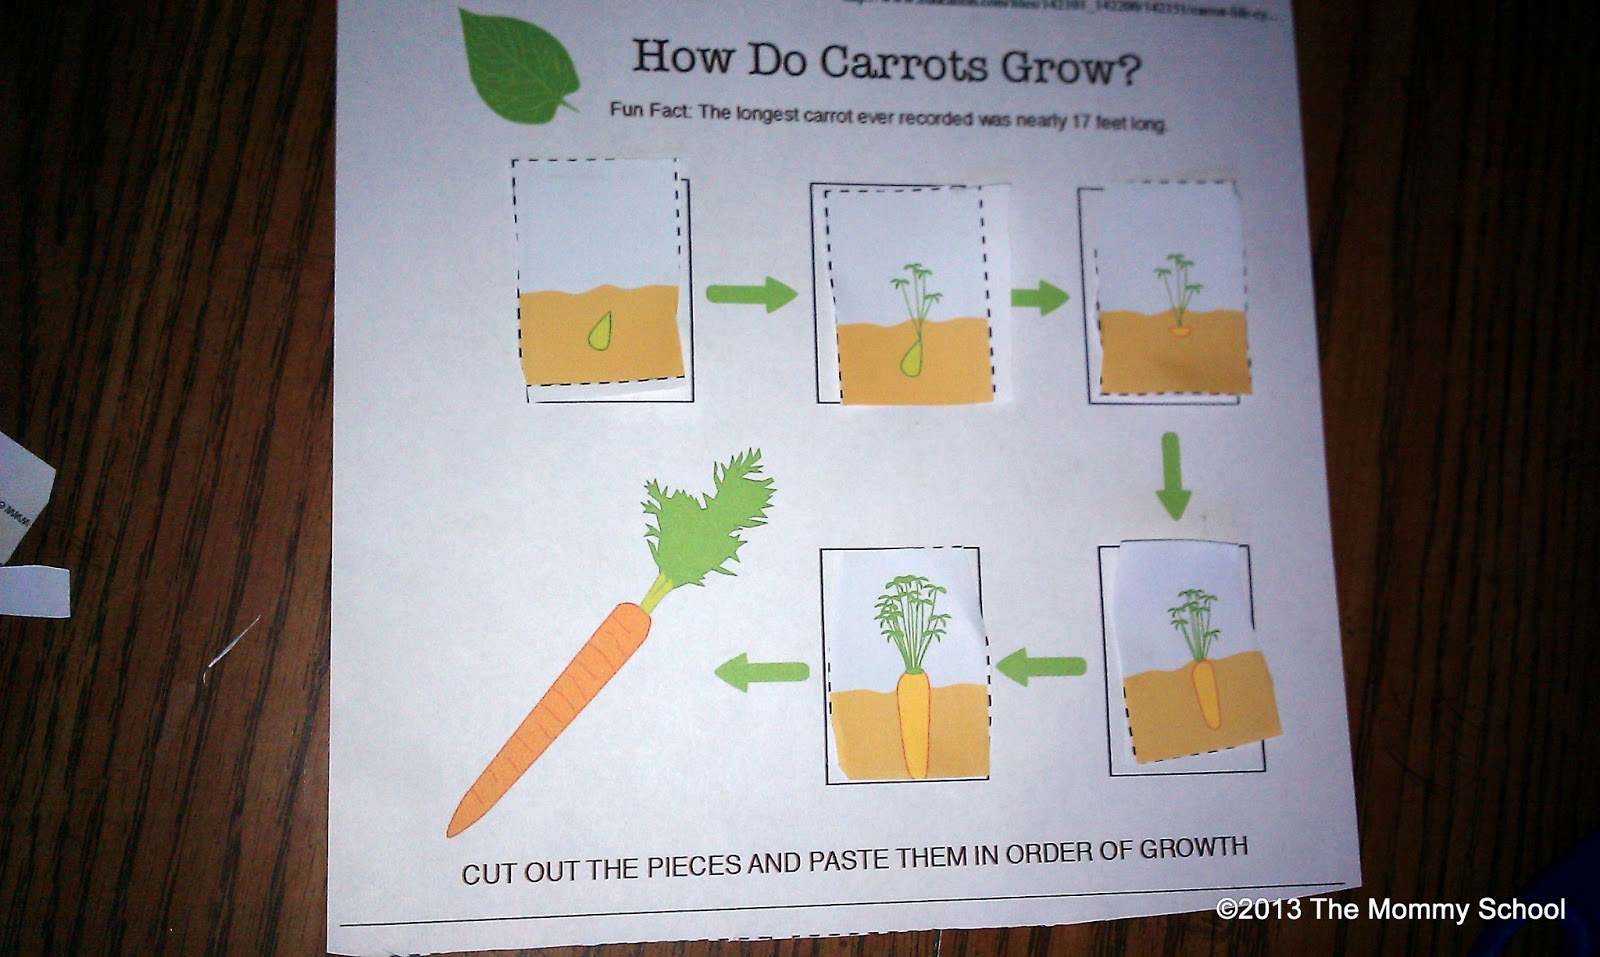 Carrot Plant Diagram 2005 Chevy Impala Stereo Wiring The Mommy School Seed Part 2